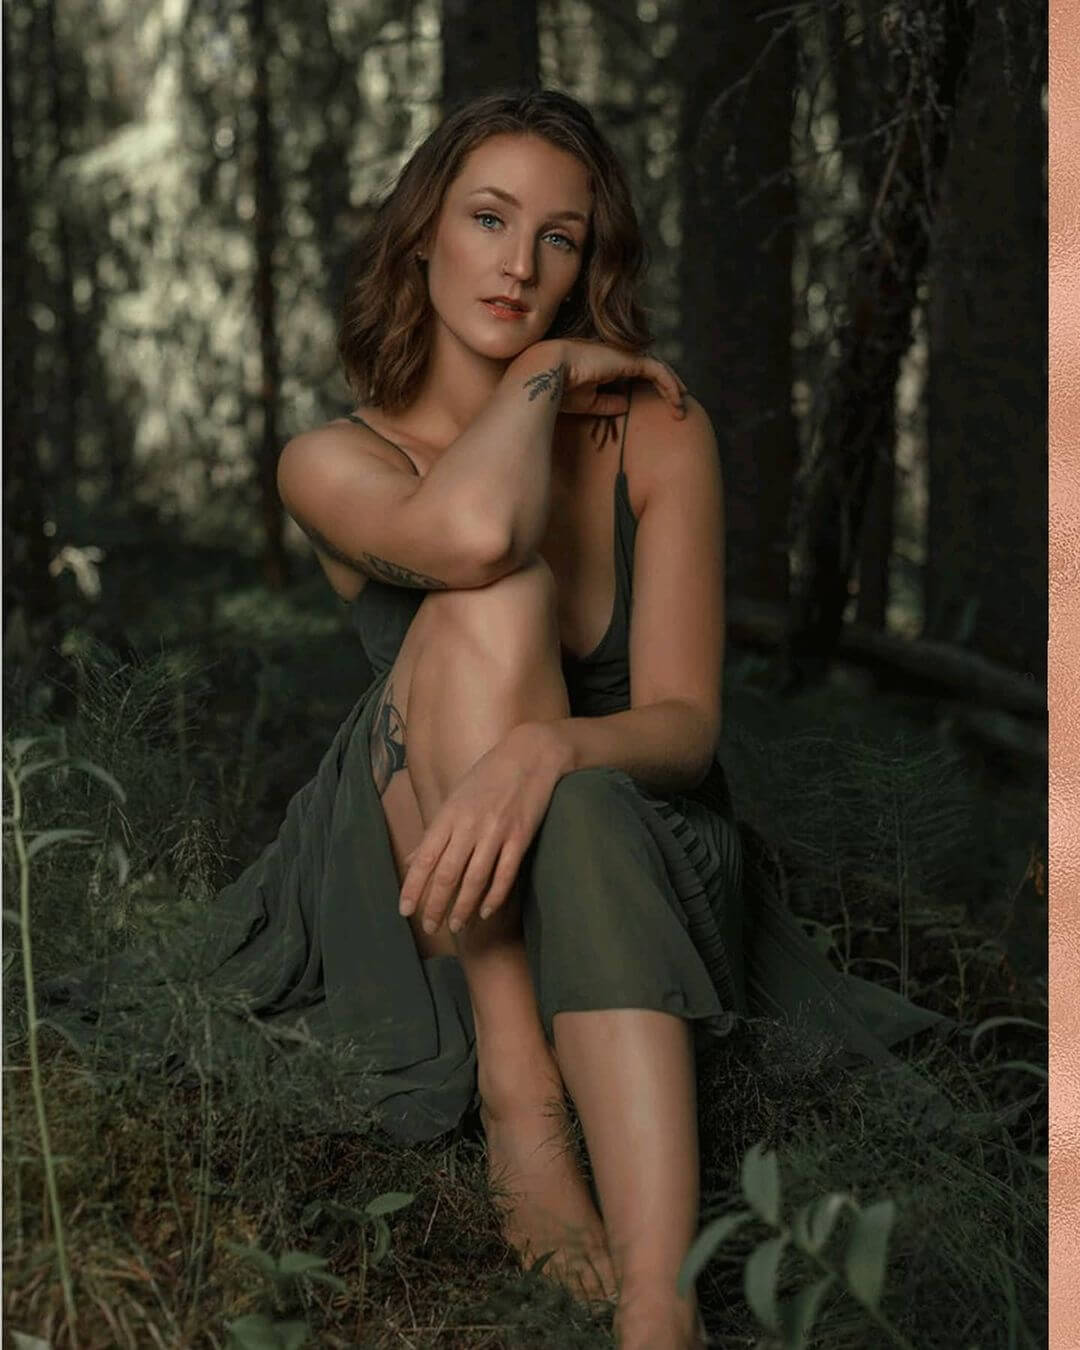 Beautiful inked Canadian model Robyn LS @robin.in.the.clouds sitting on the ground bare foot in the woods showing her sexy calves wearing a green dress for a boudoir photo session by Kelvin Vinx Comendador @vinxreddervon